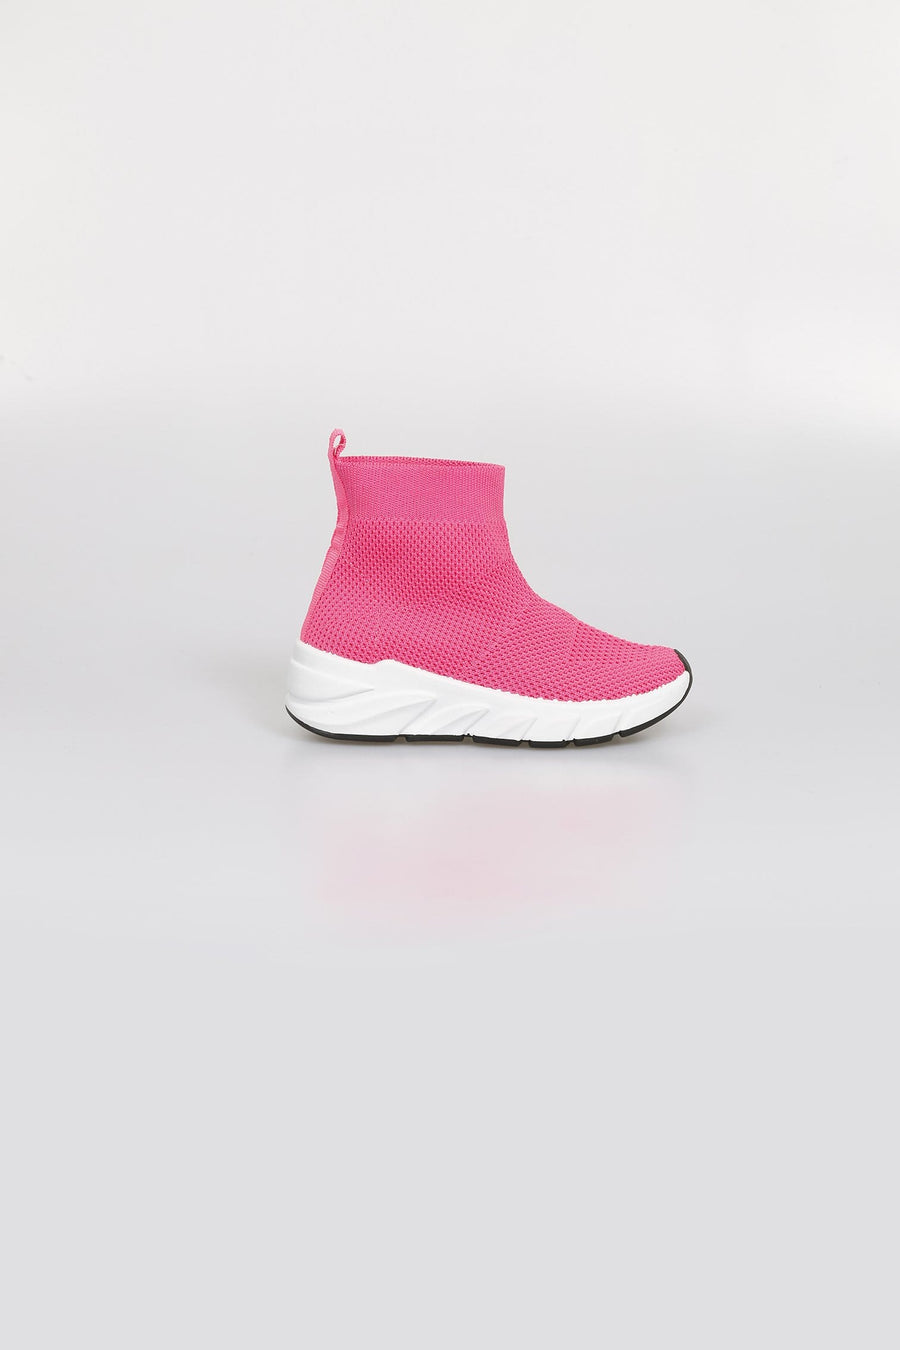 Nava Air Flow Chunky Sole Mesh Sock Trainers Fuchsia From Little Attitude